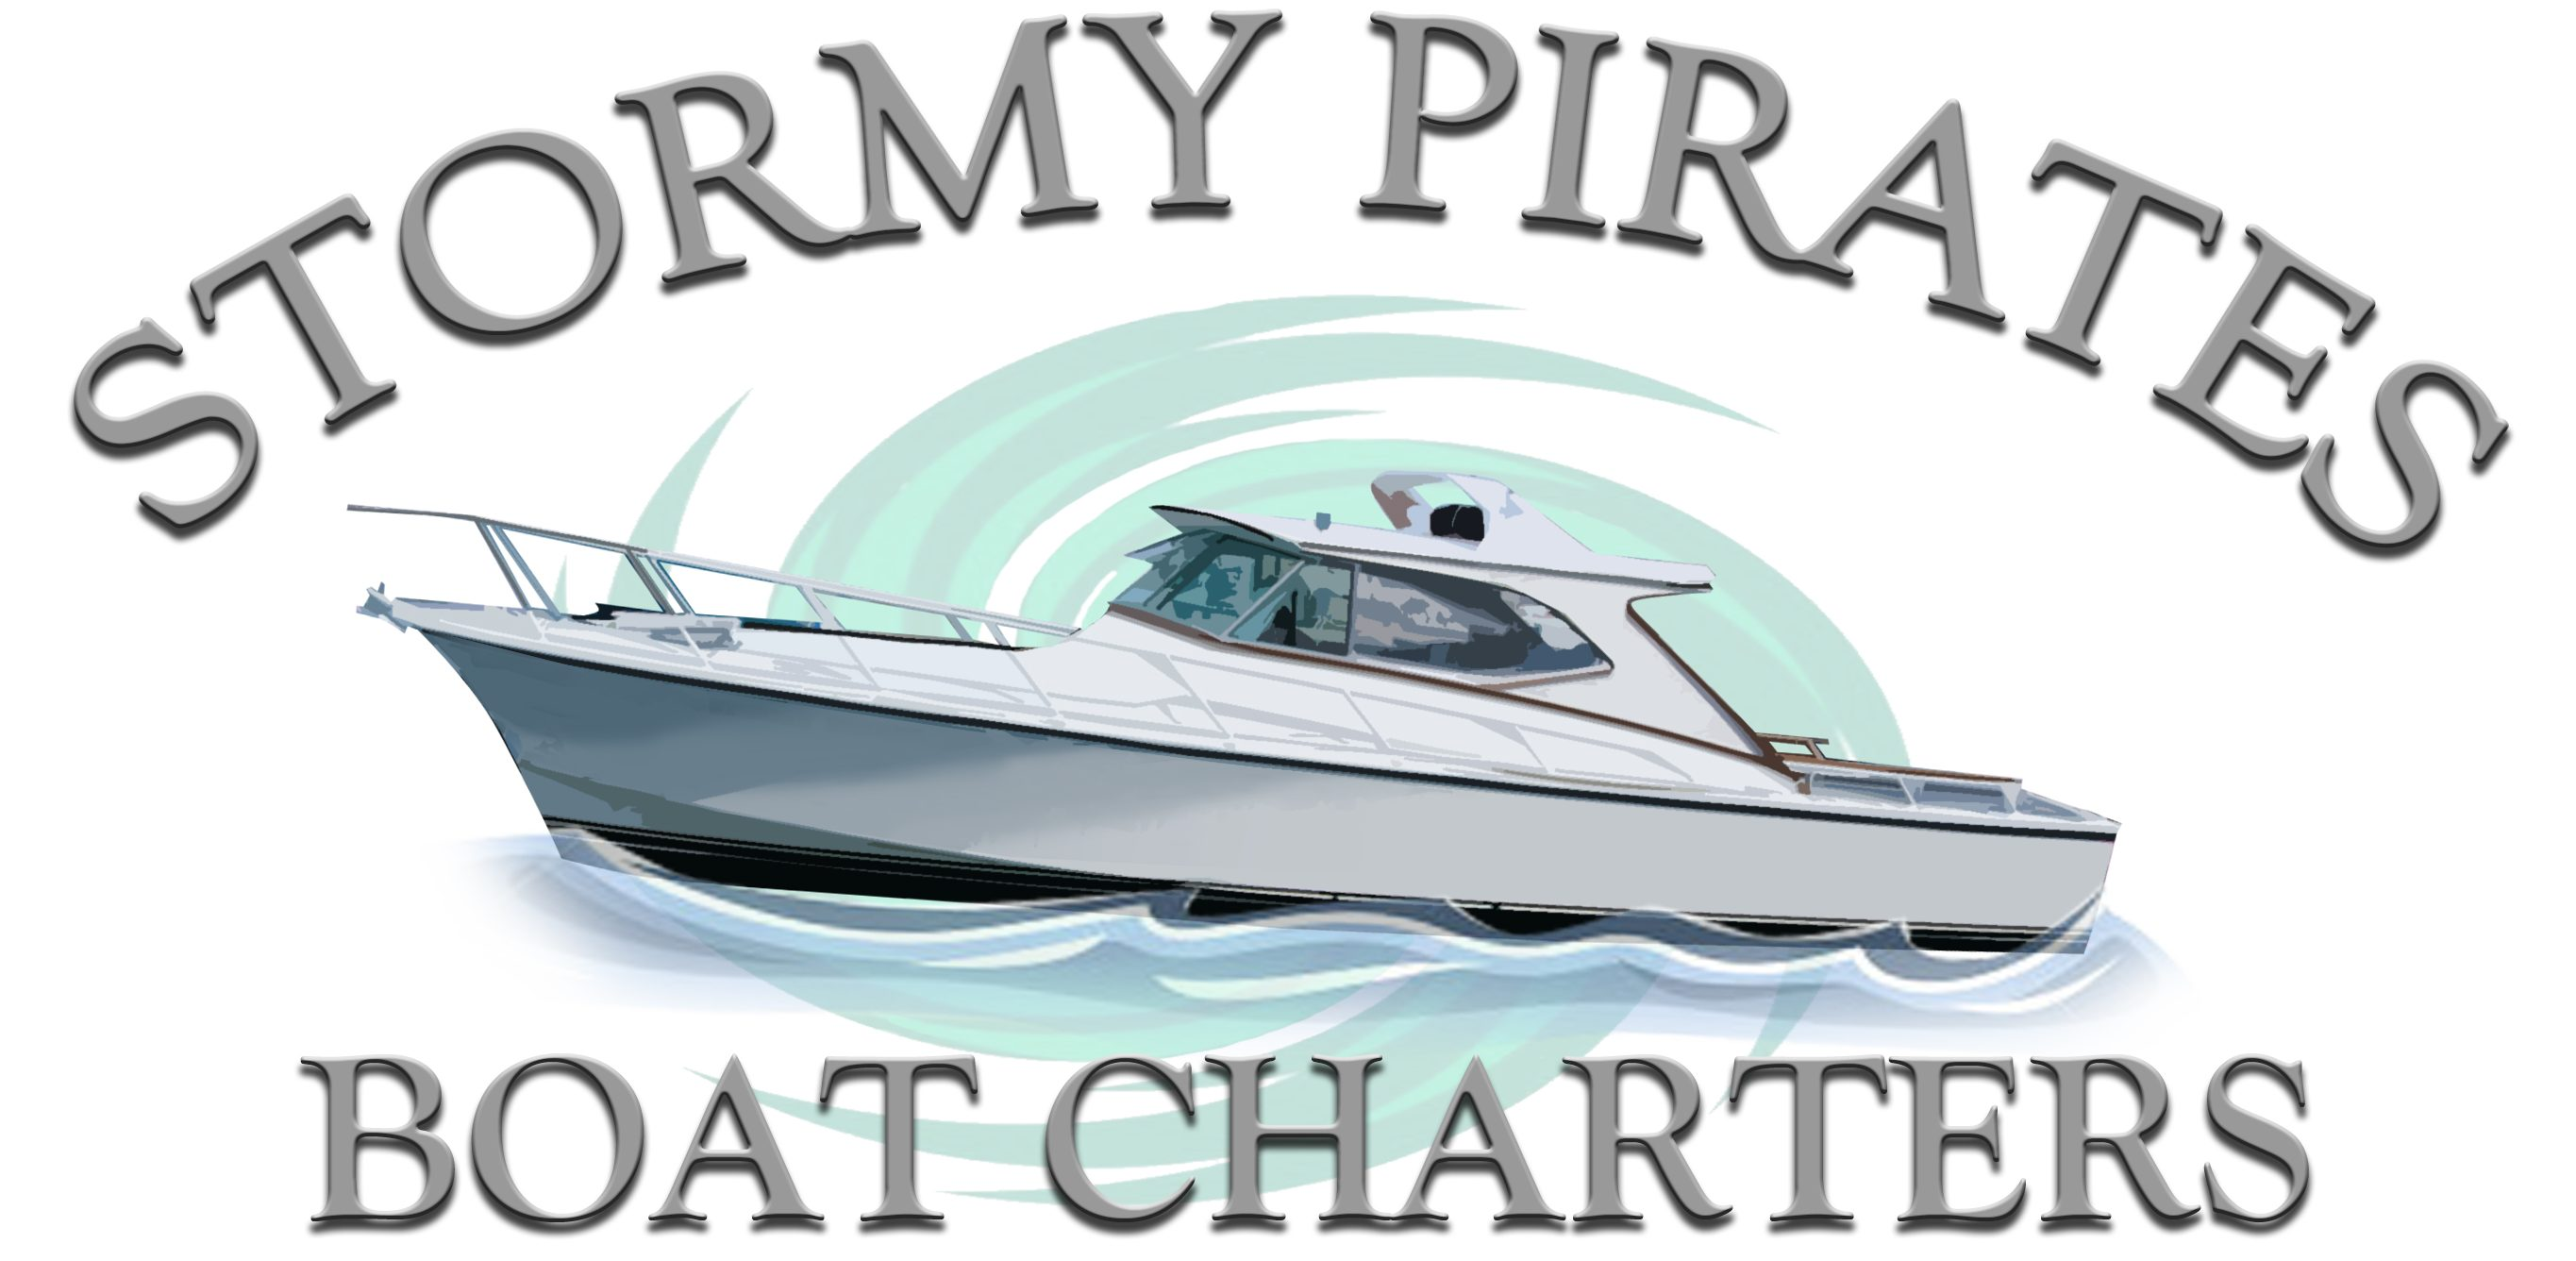 Stormy Pirates Boat Charters